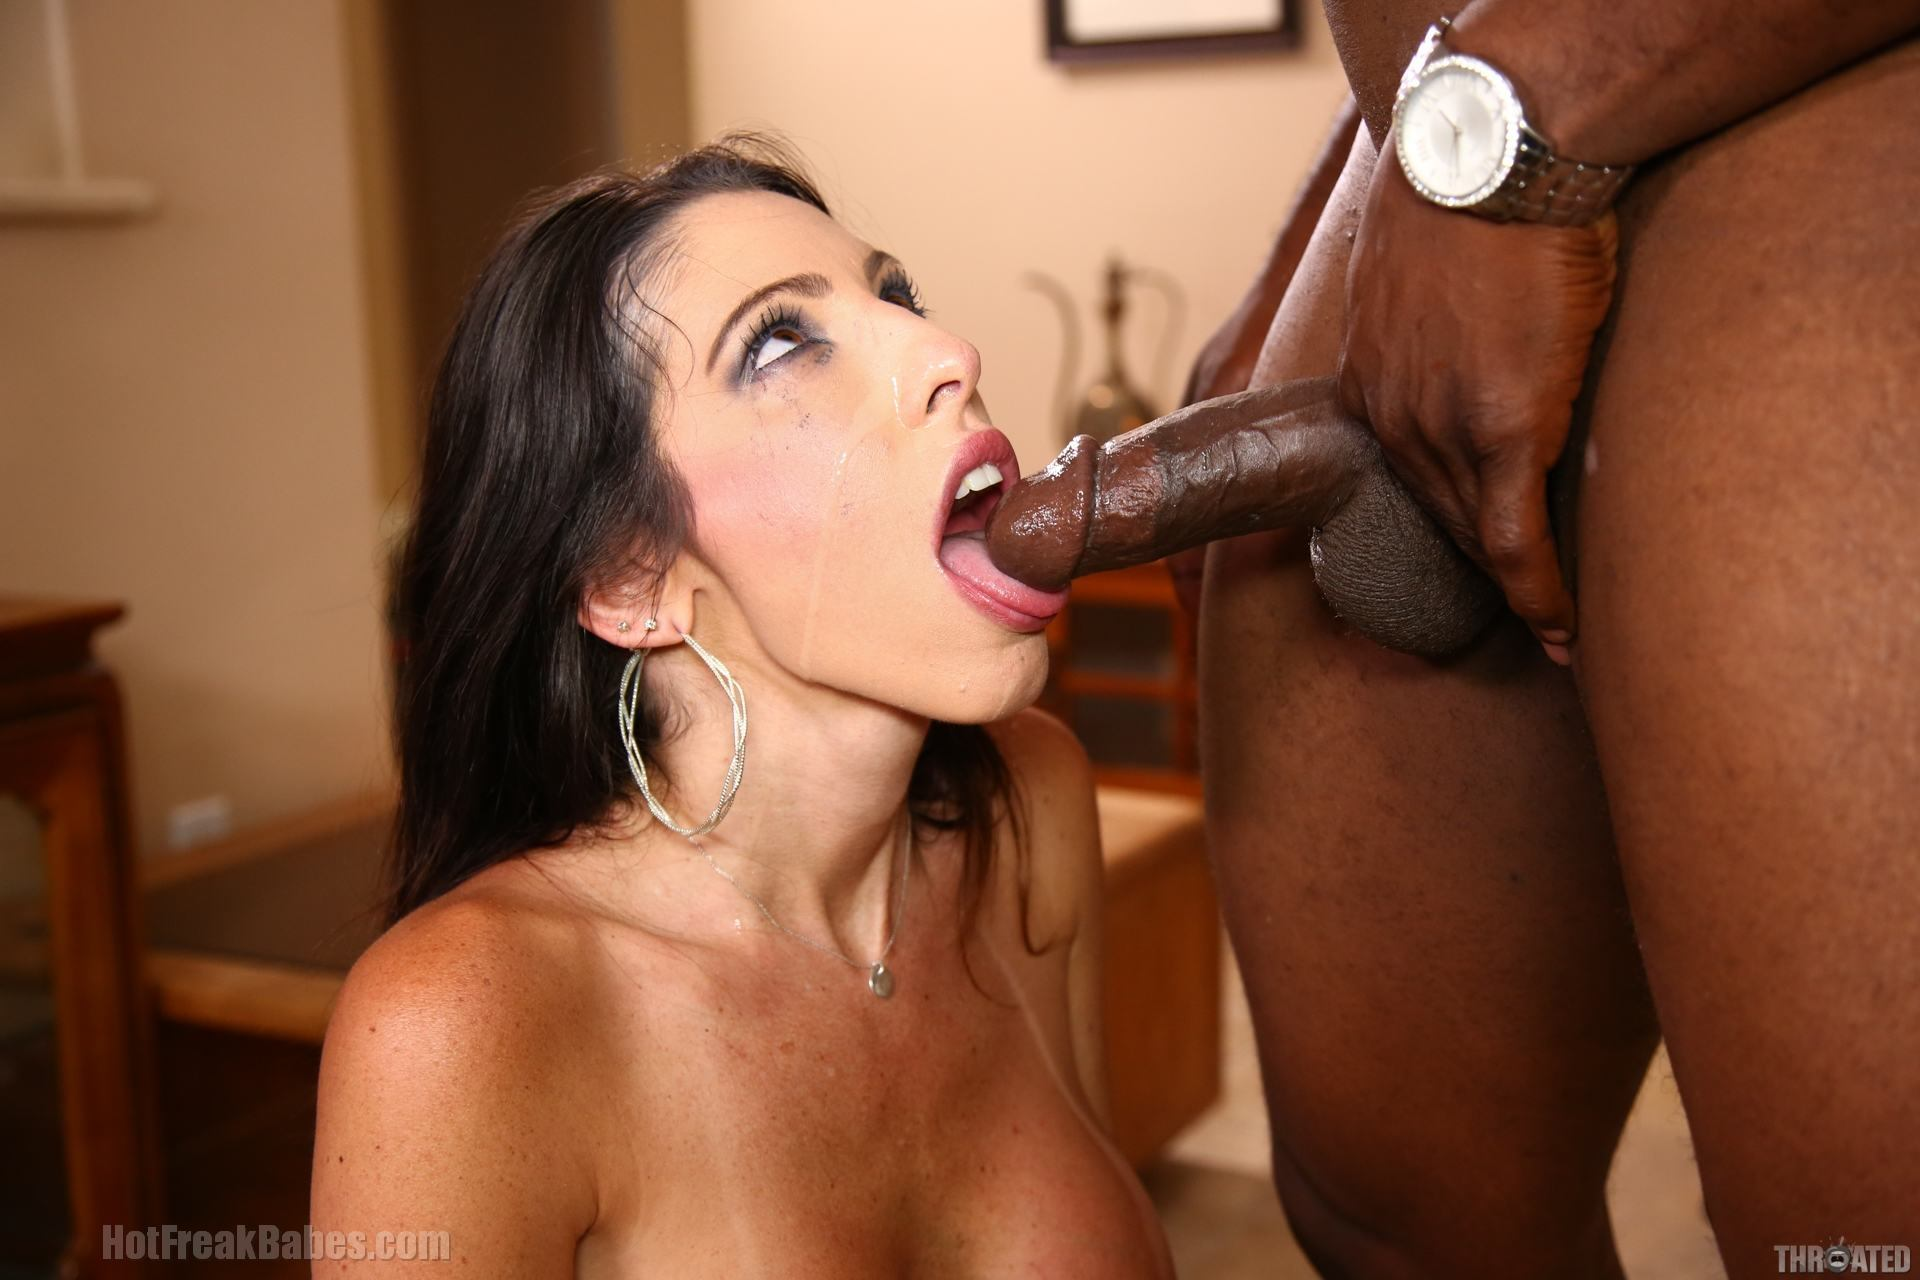 Amiture interracial porn